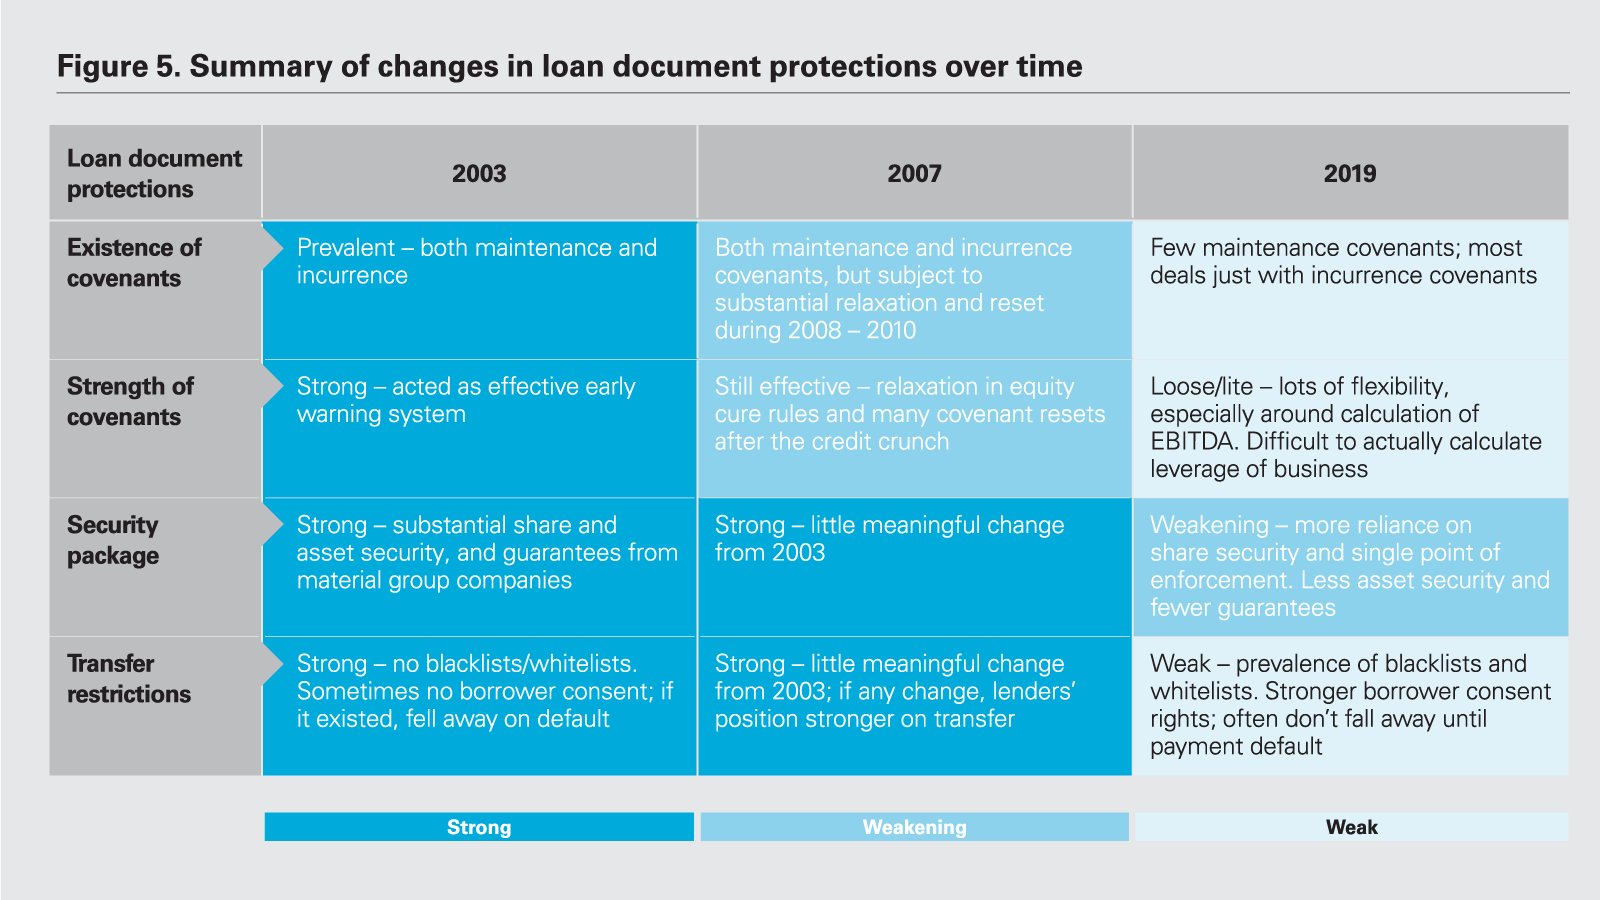 Summary of changes in loan document protections over time chart